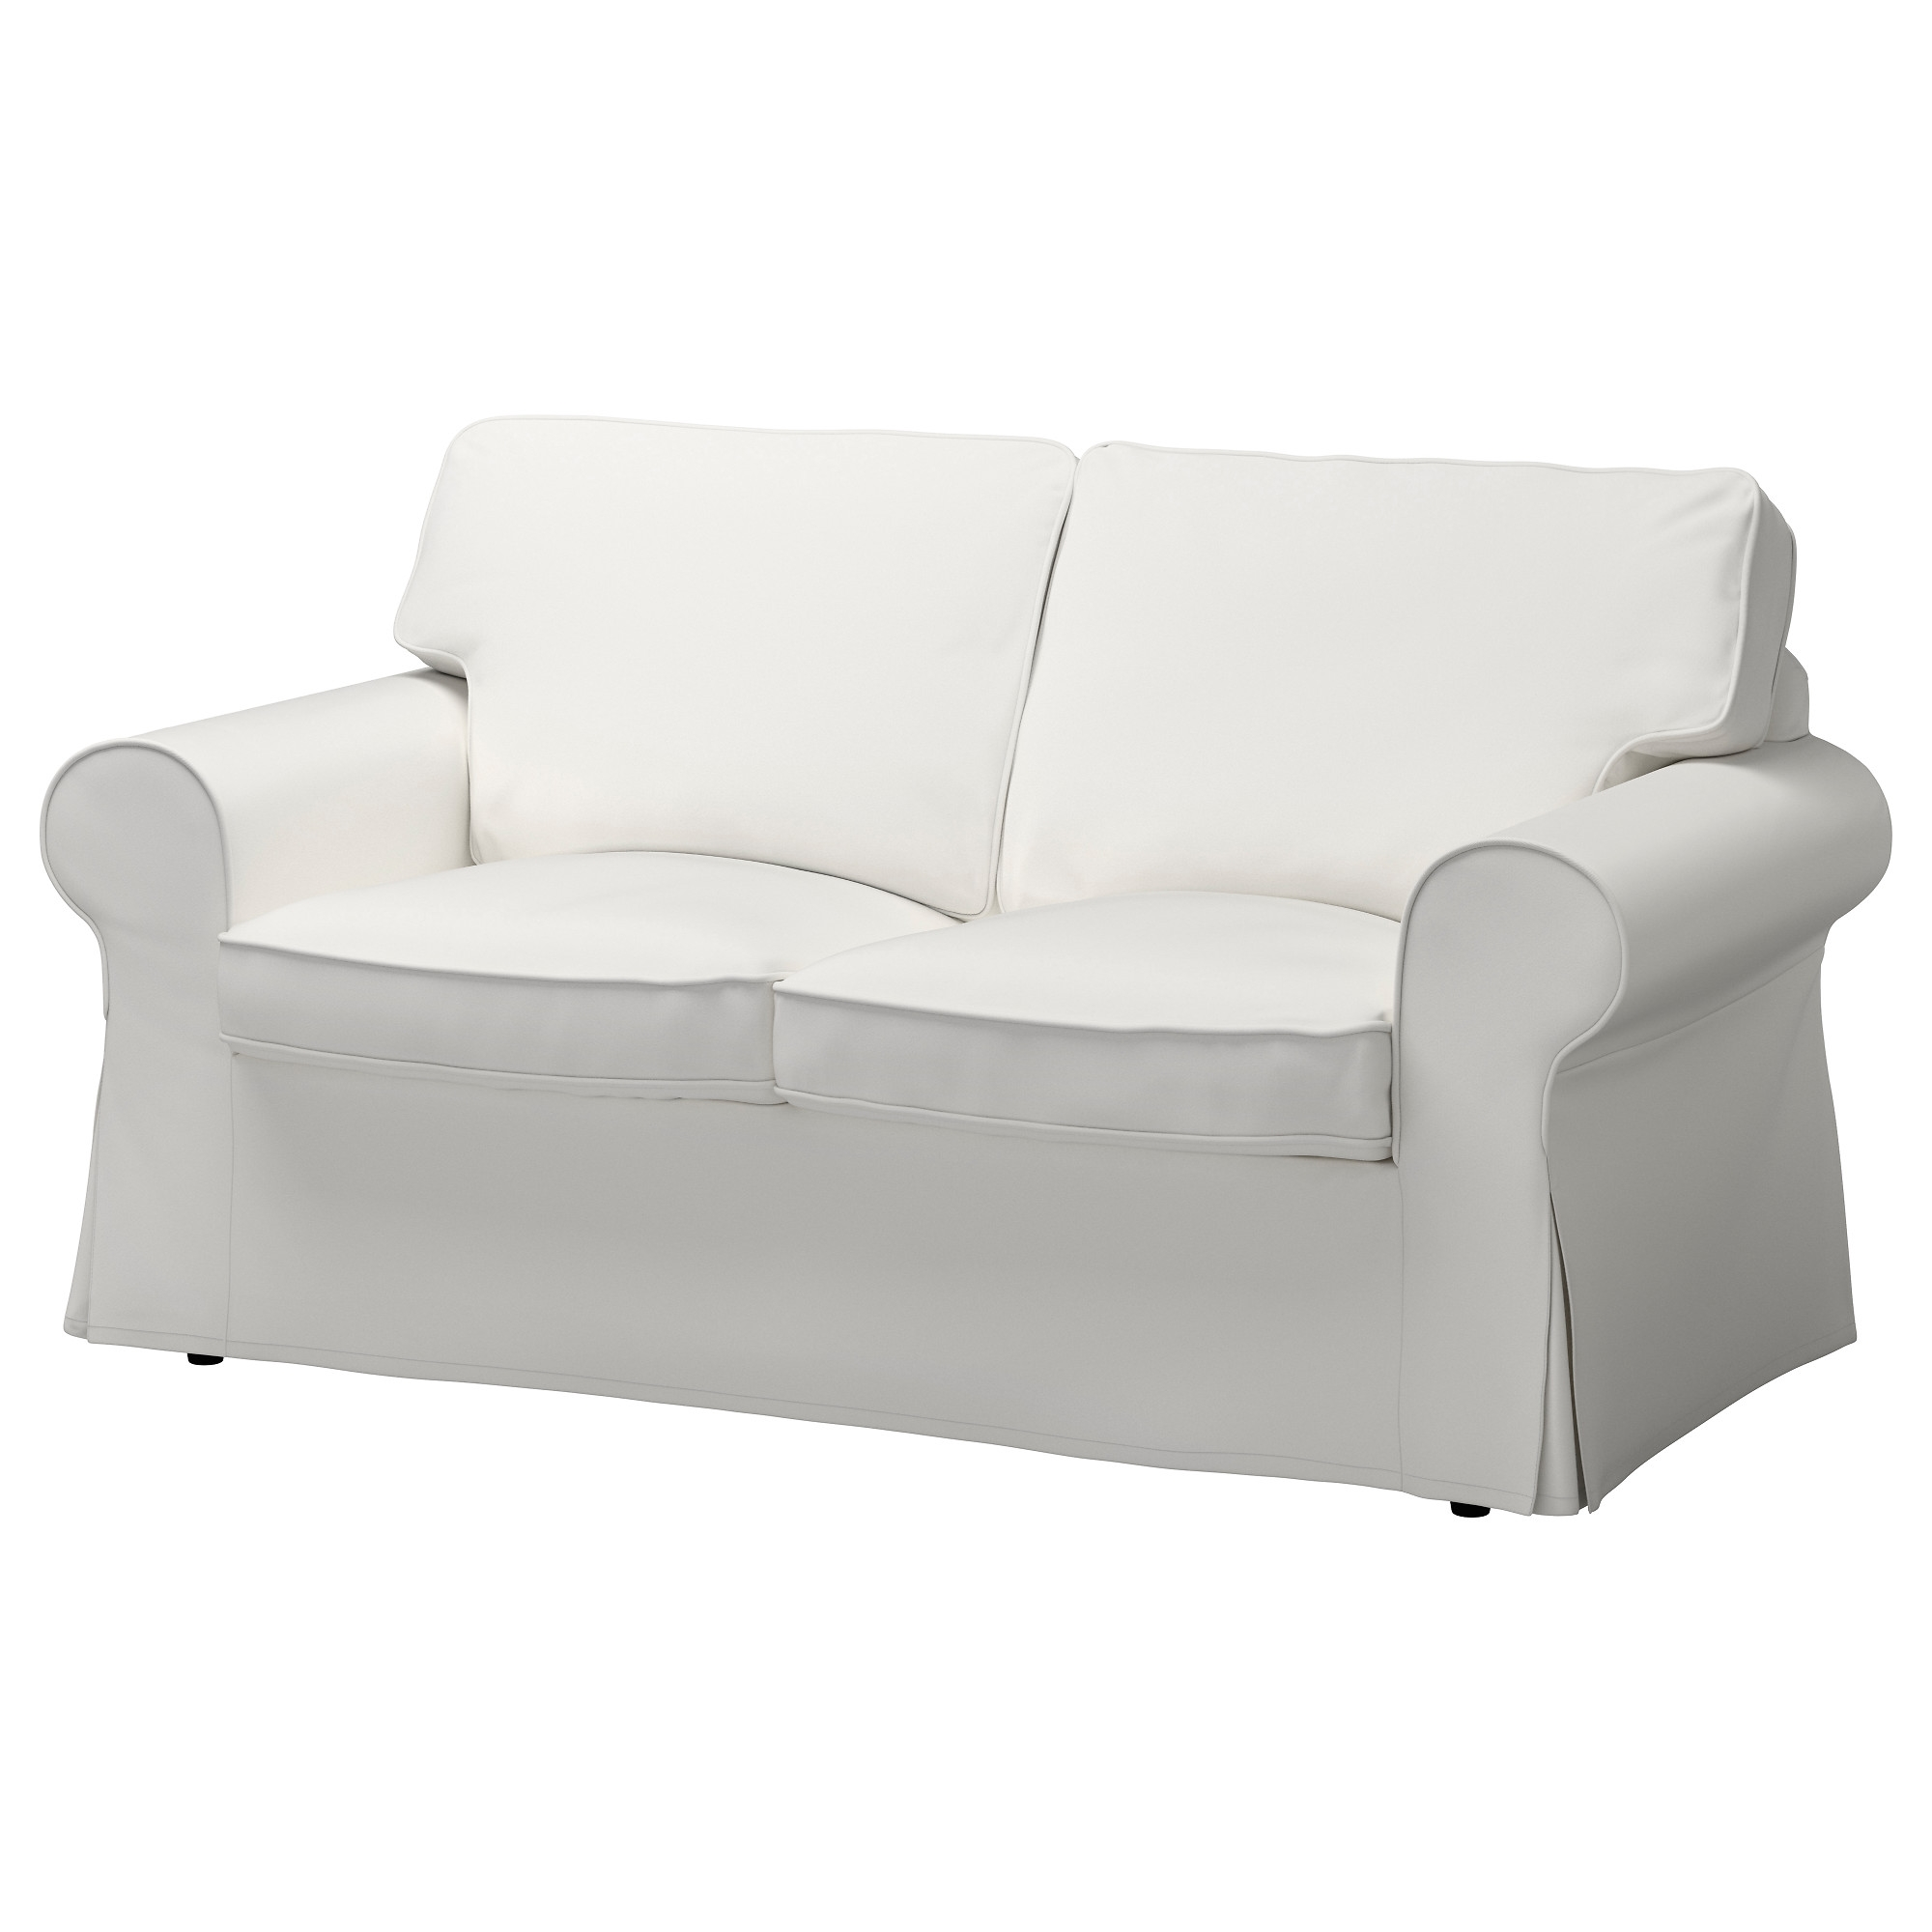 Fancy White Sofa Chair 32 About Remodel Sofa Room Ideas With White Regarding White Sofa Chairs (Image 5 of 15)